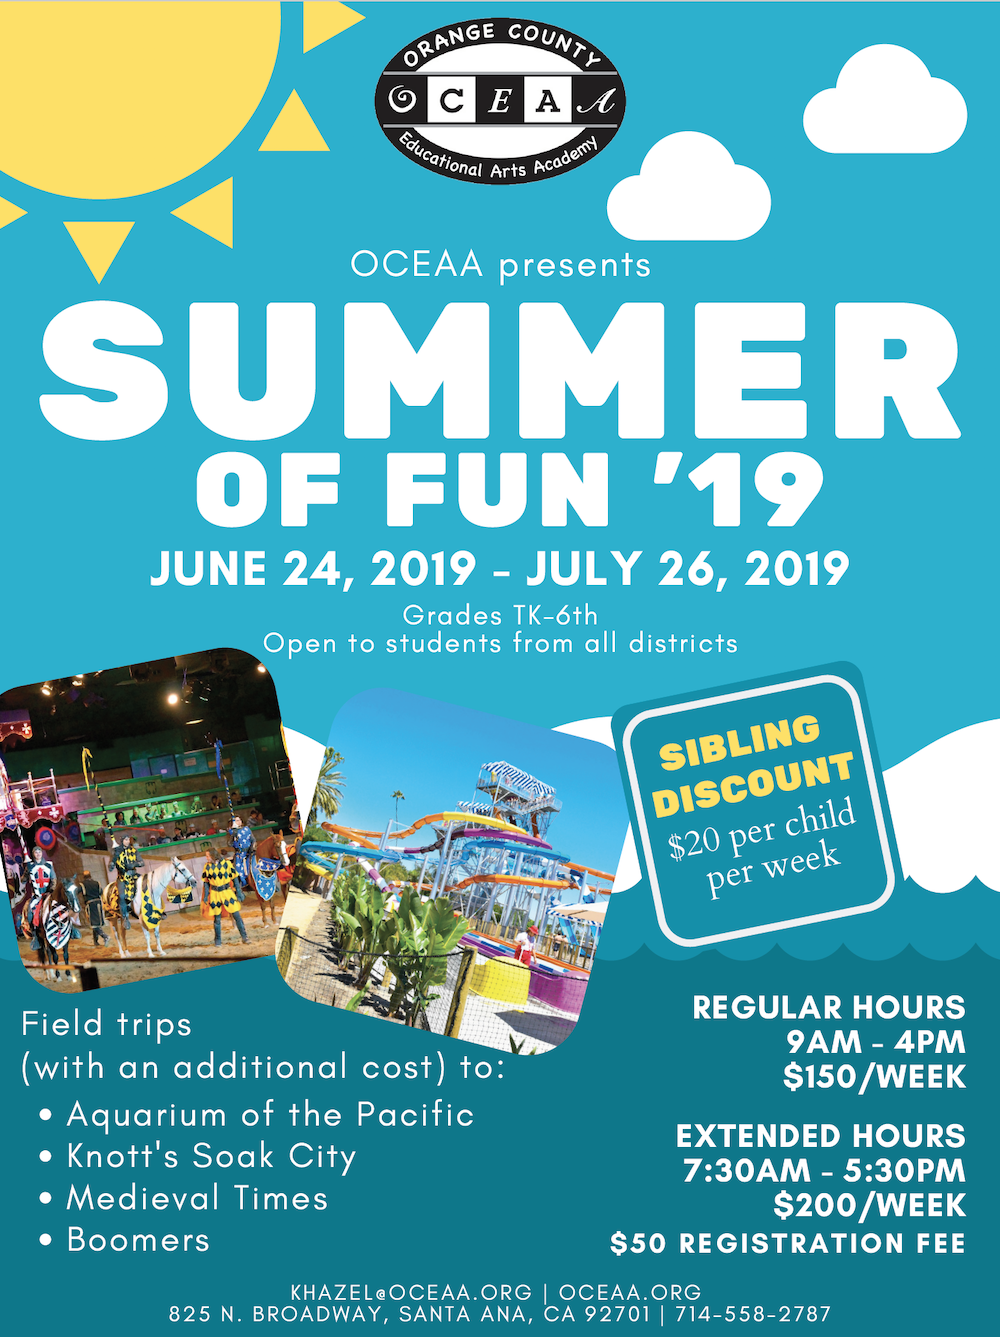 Summer of Fun - OCEAA.org